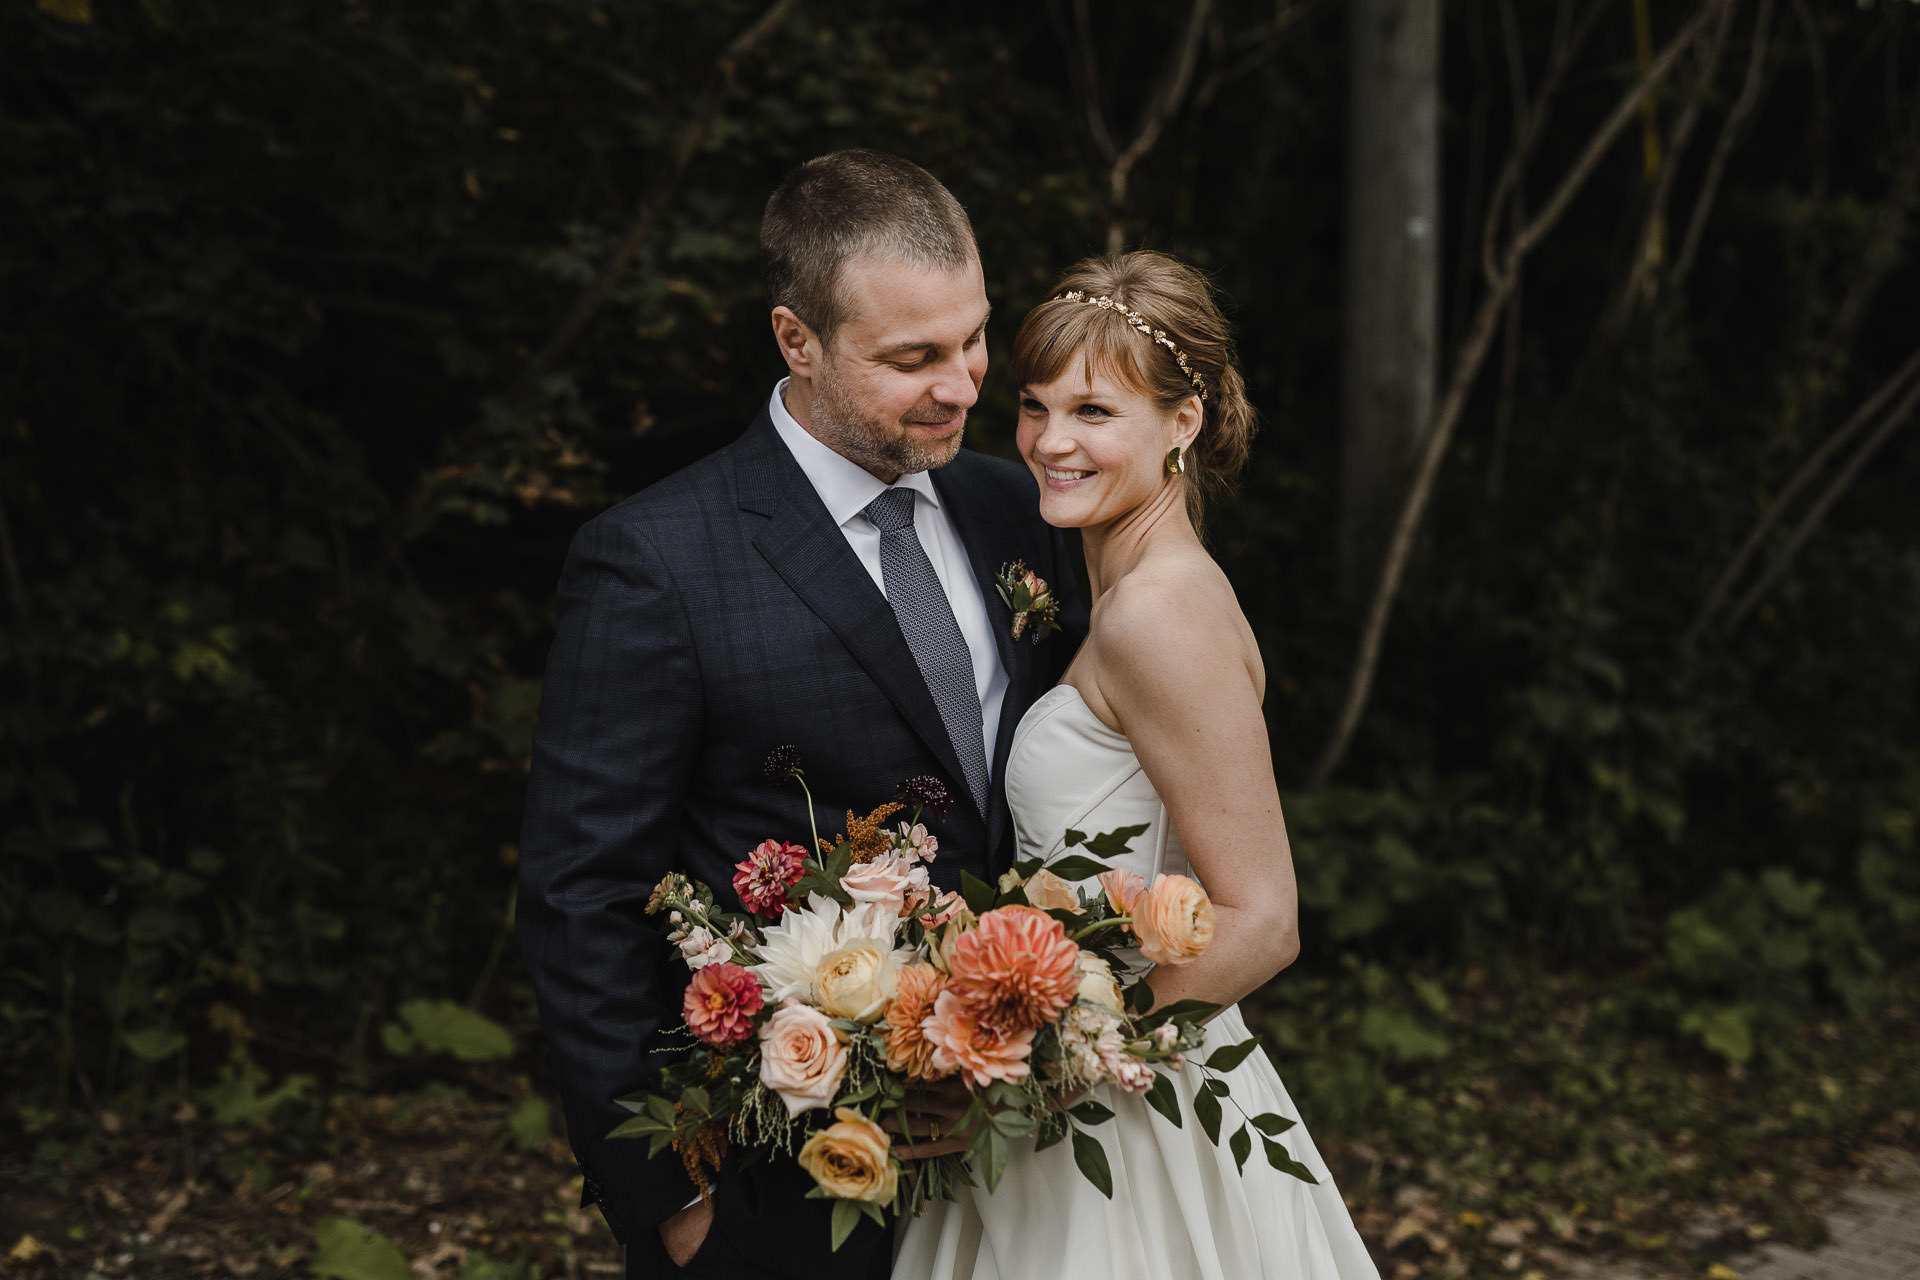 Evergreen Brickworks wedding photographer - bride and groom portrait in the forest